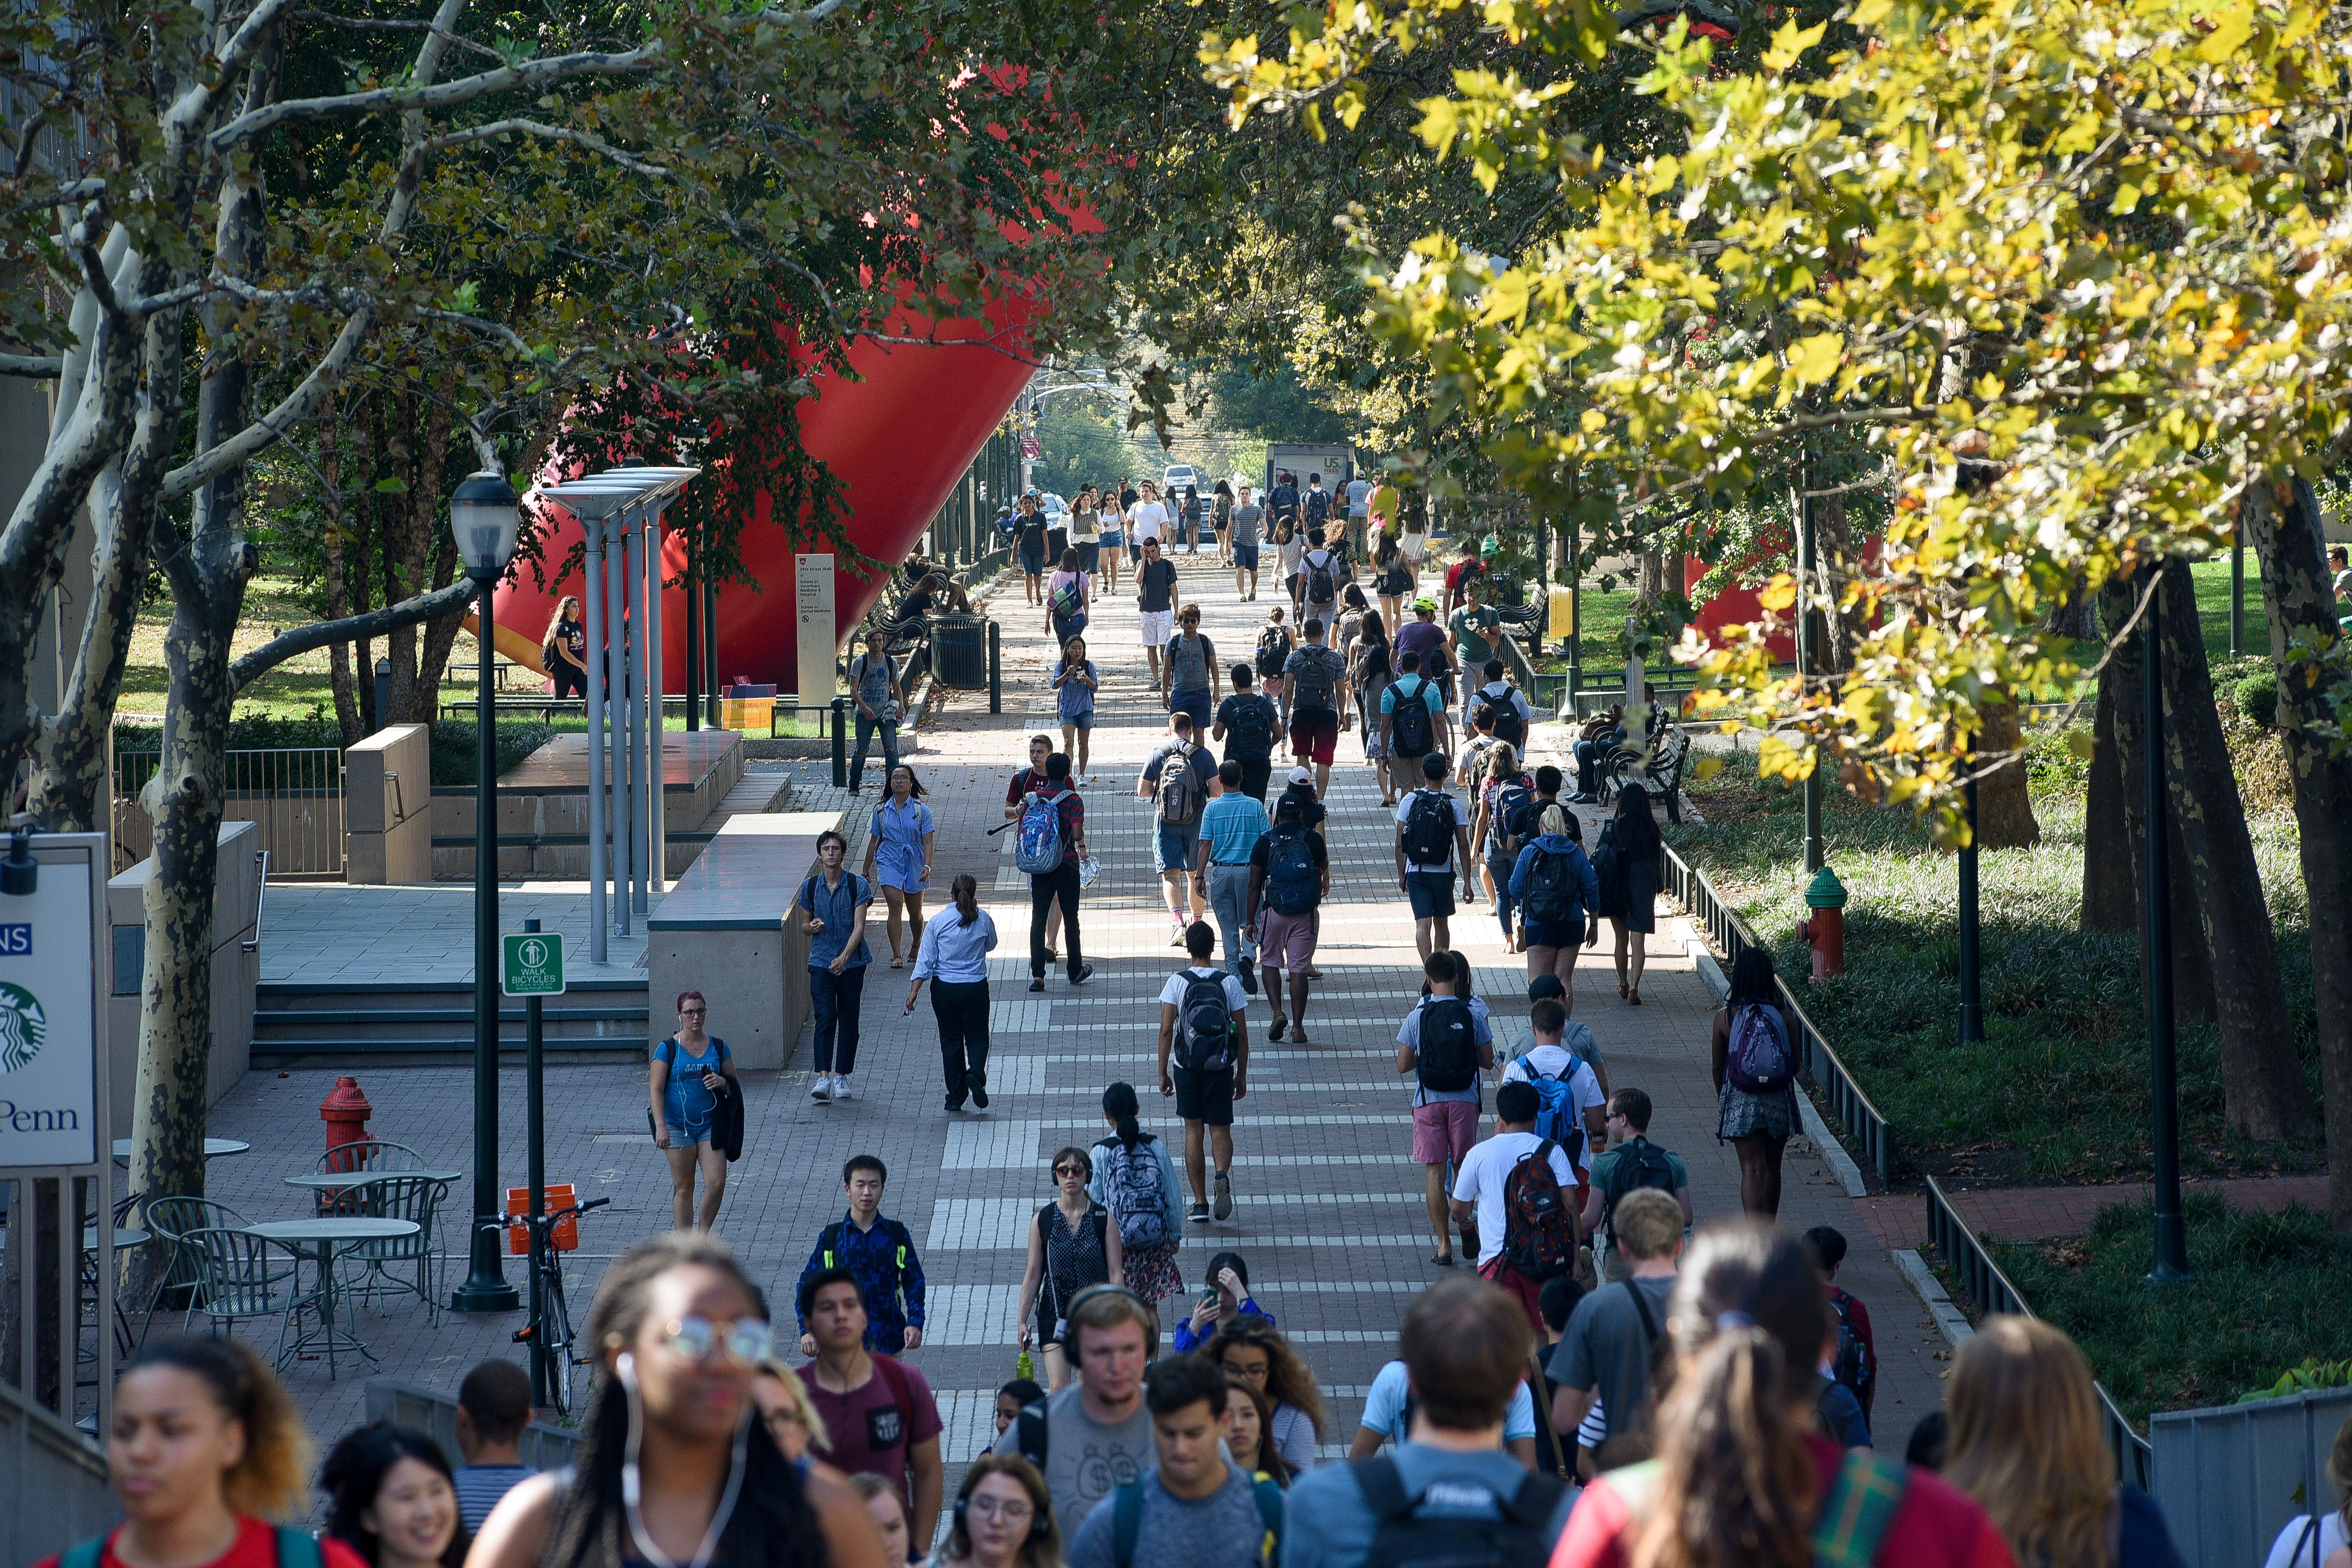 It happens here, too: Lessons for universities on preventing sexual